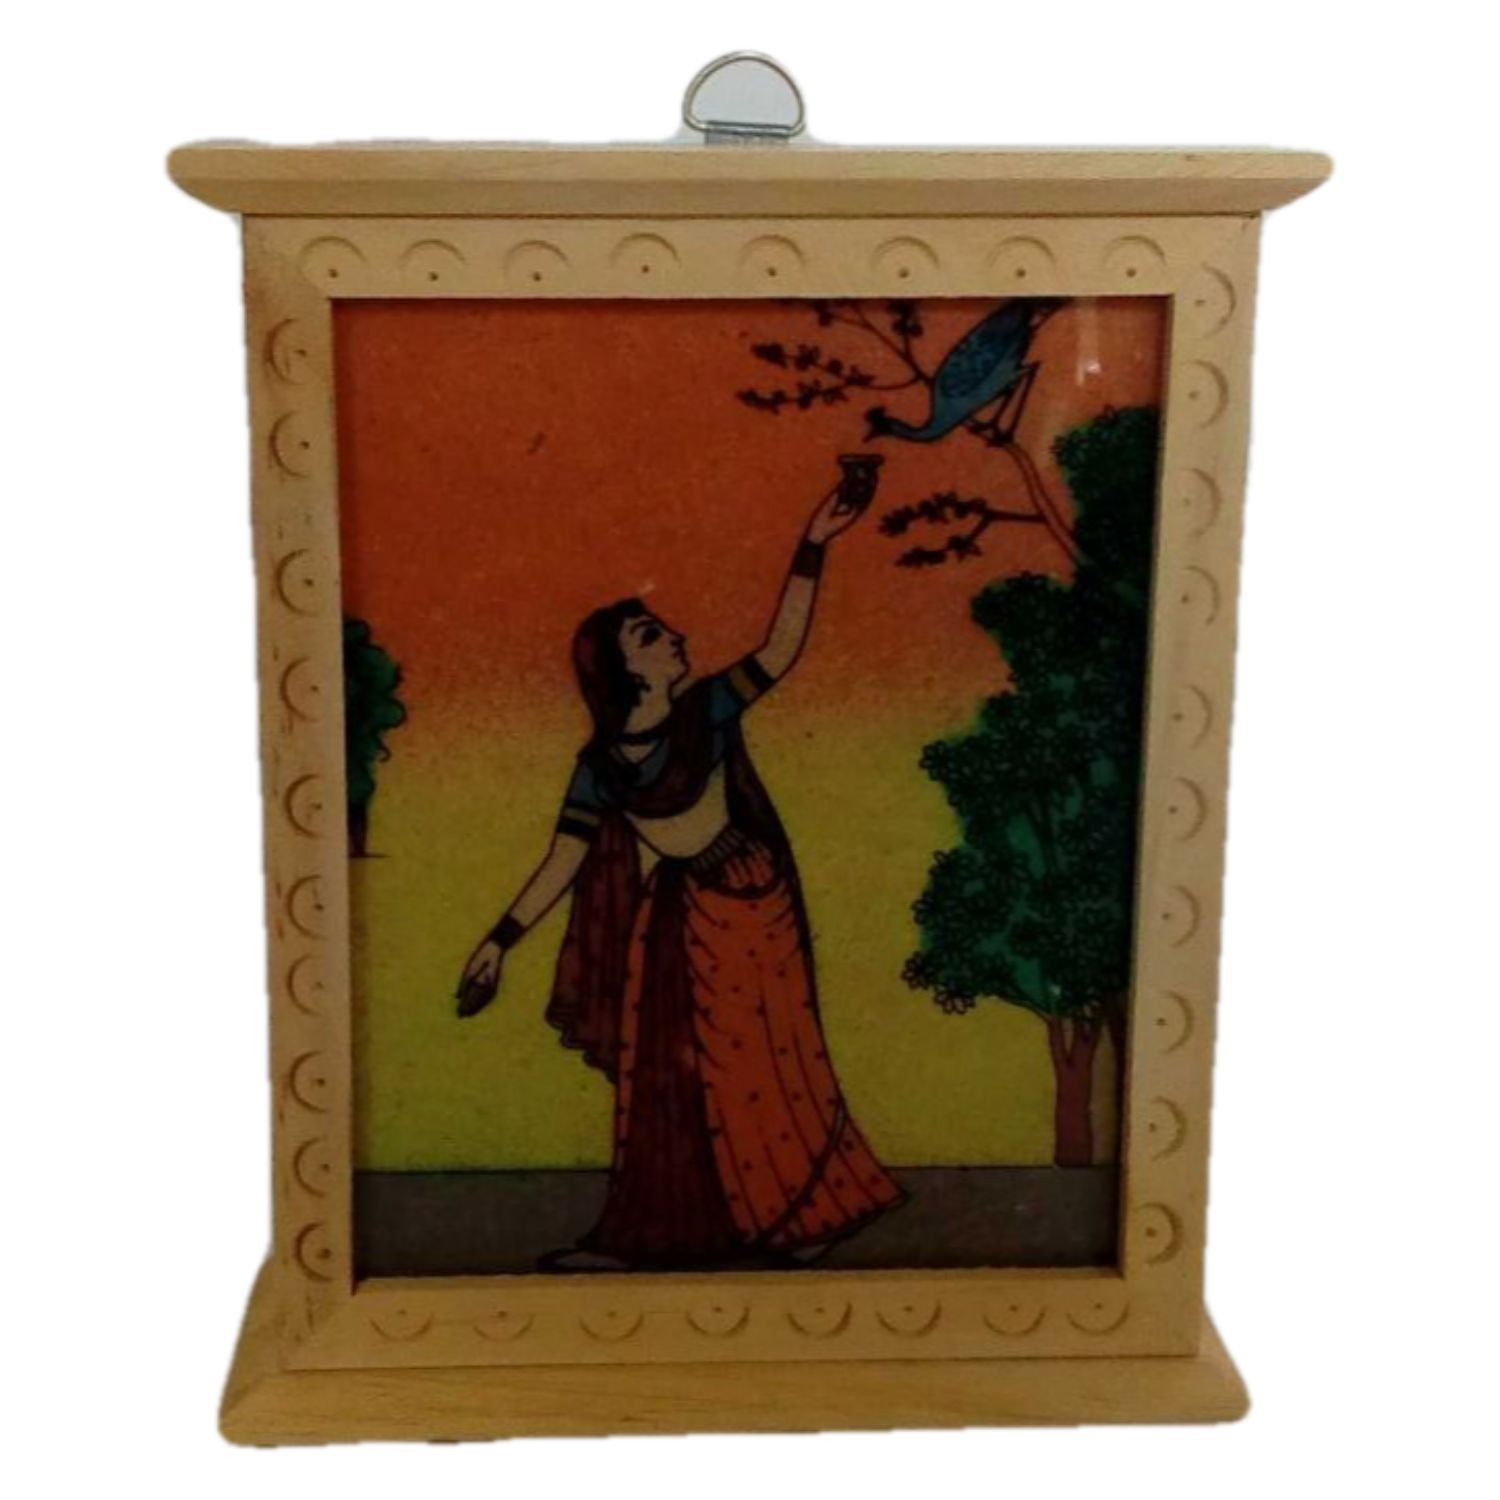 Handmade Excellent Multicolor Wooden Jewelery Box with Beautiful Rajasthani Art by Awarded Indian Rural Artisan